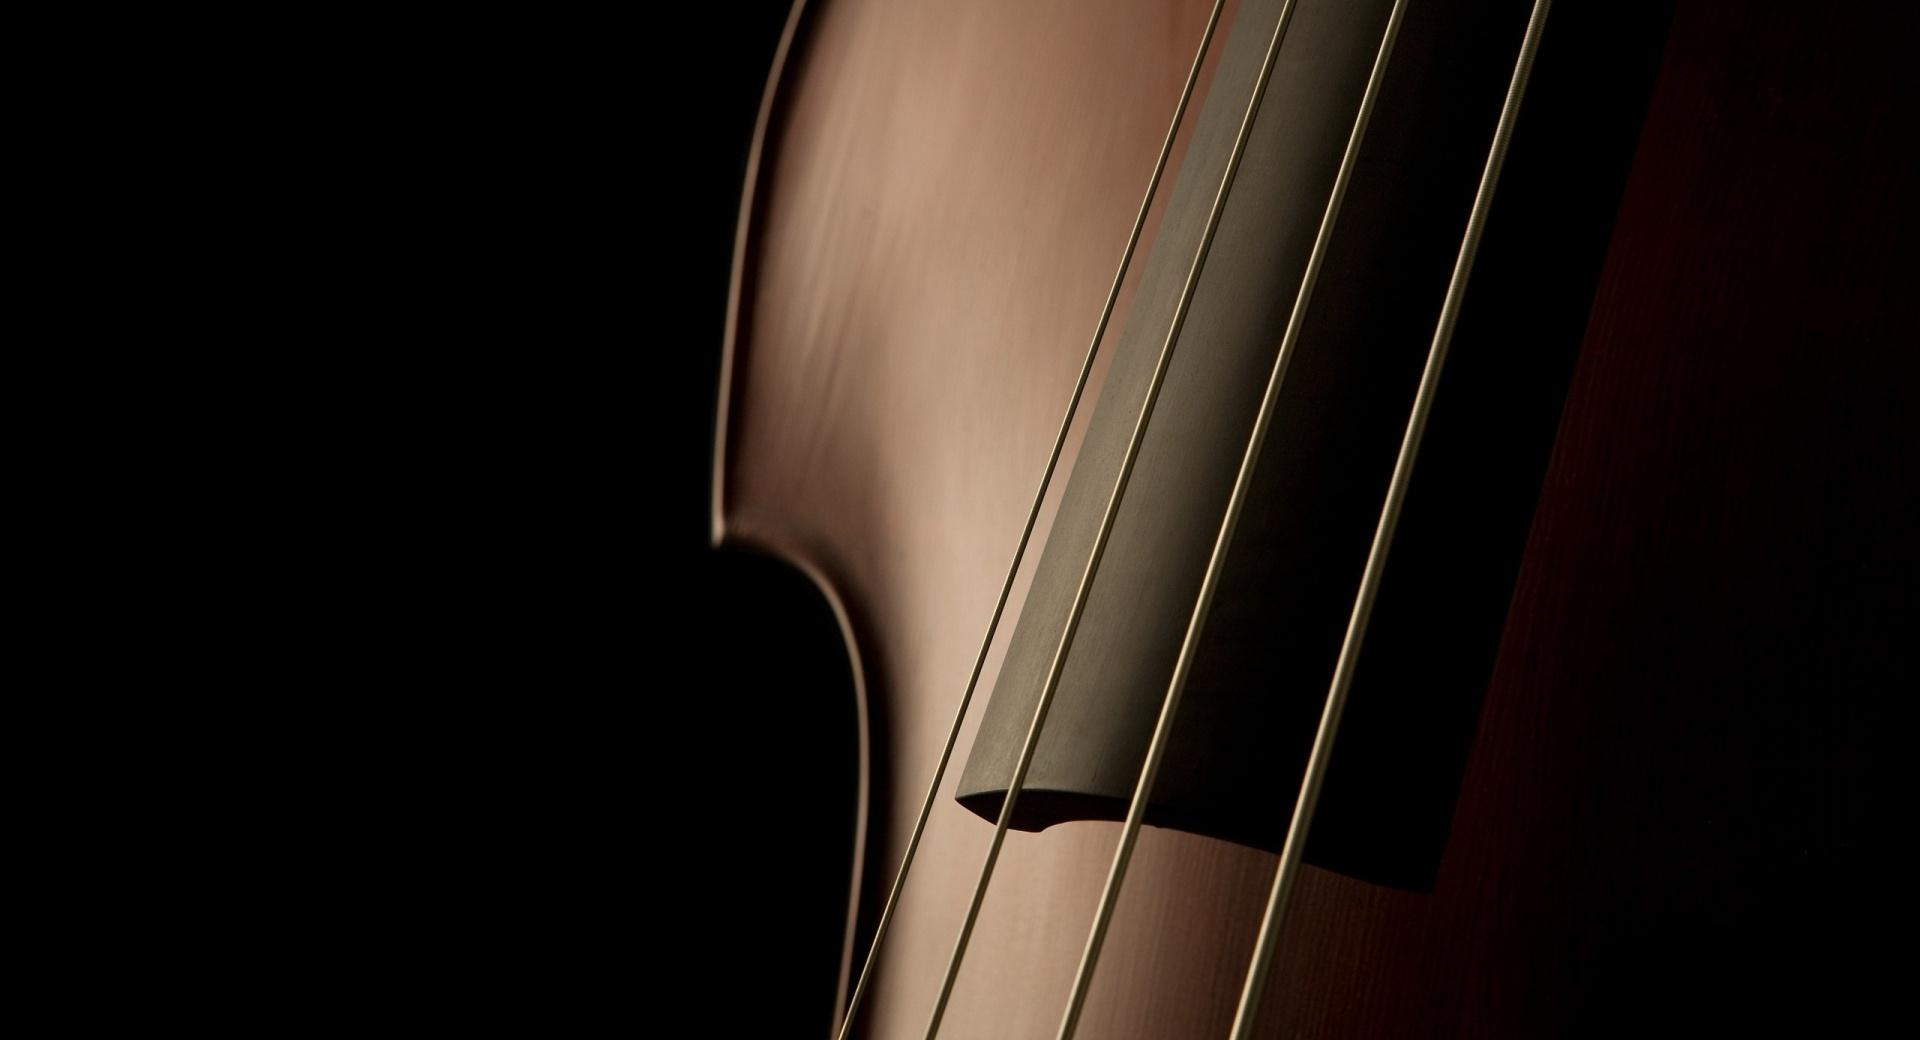 Double Bass Close Up at 320 x 480 iPhone size wallpapers HD quality